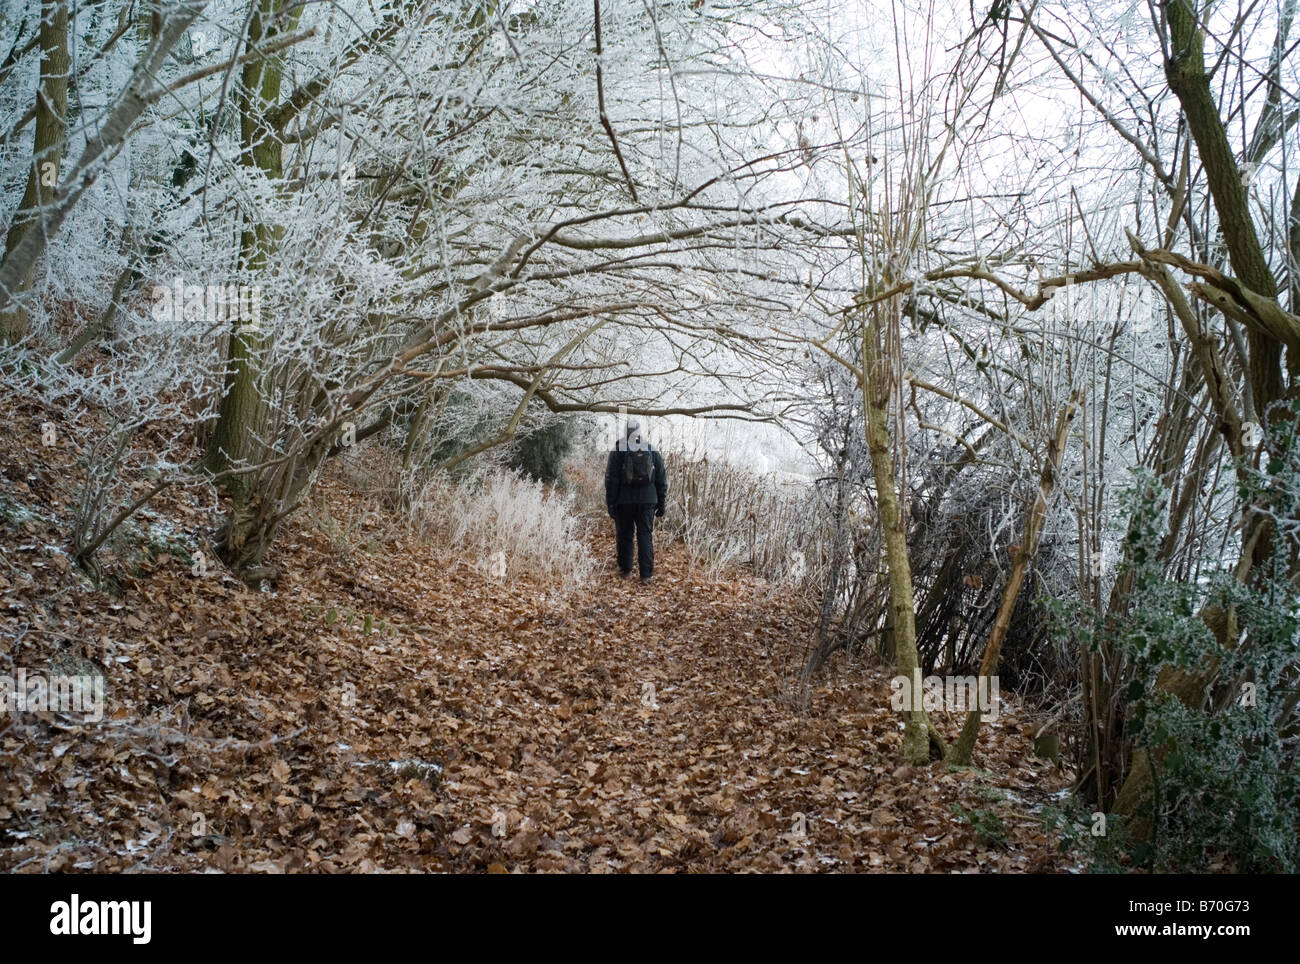 Solitary figure in winter woodland, UK - Stock Image